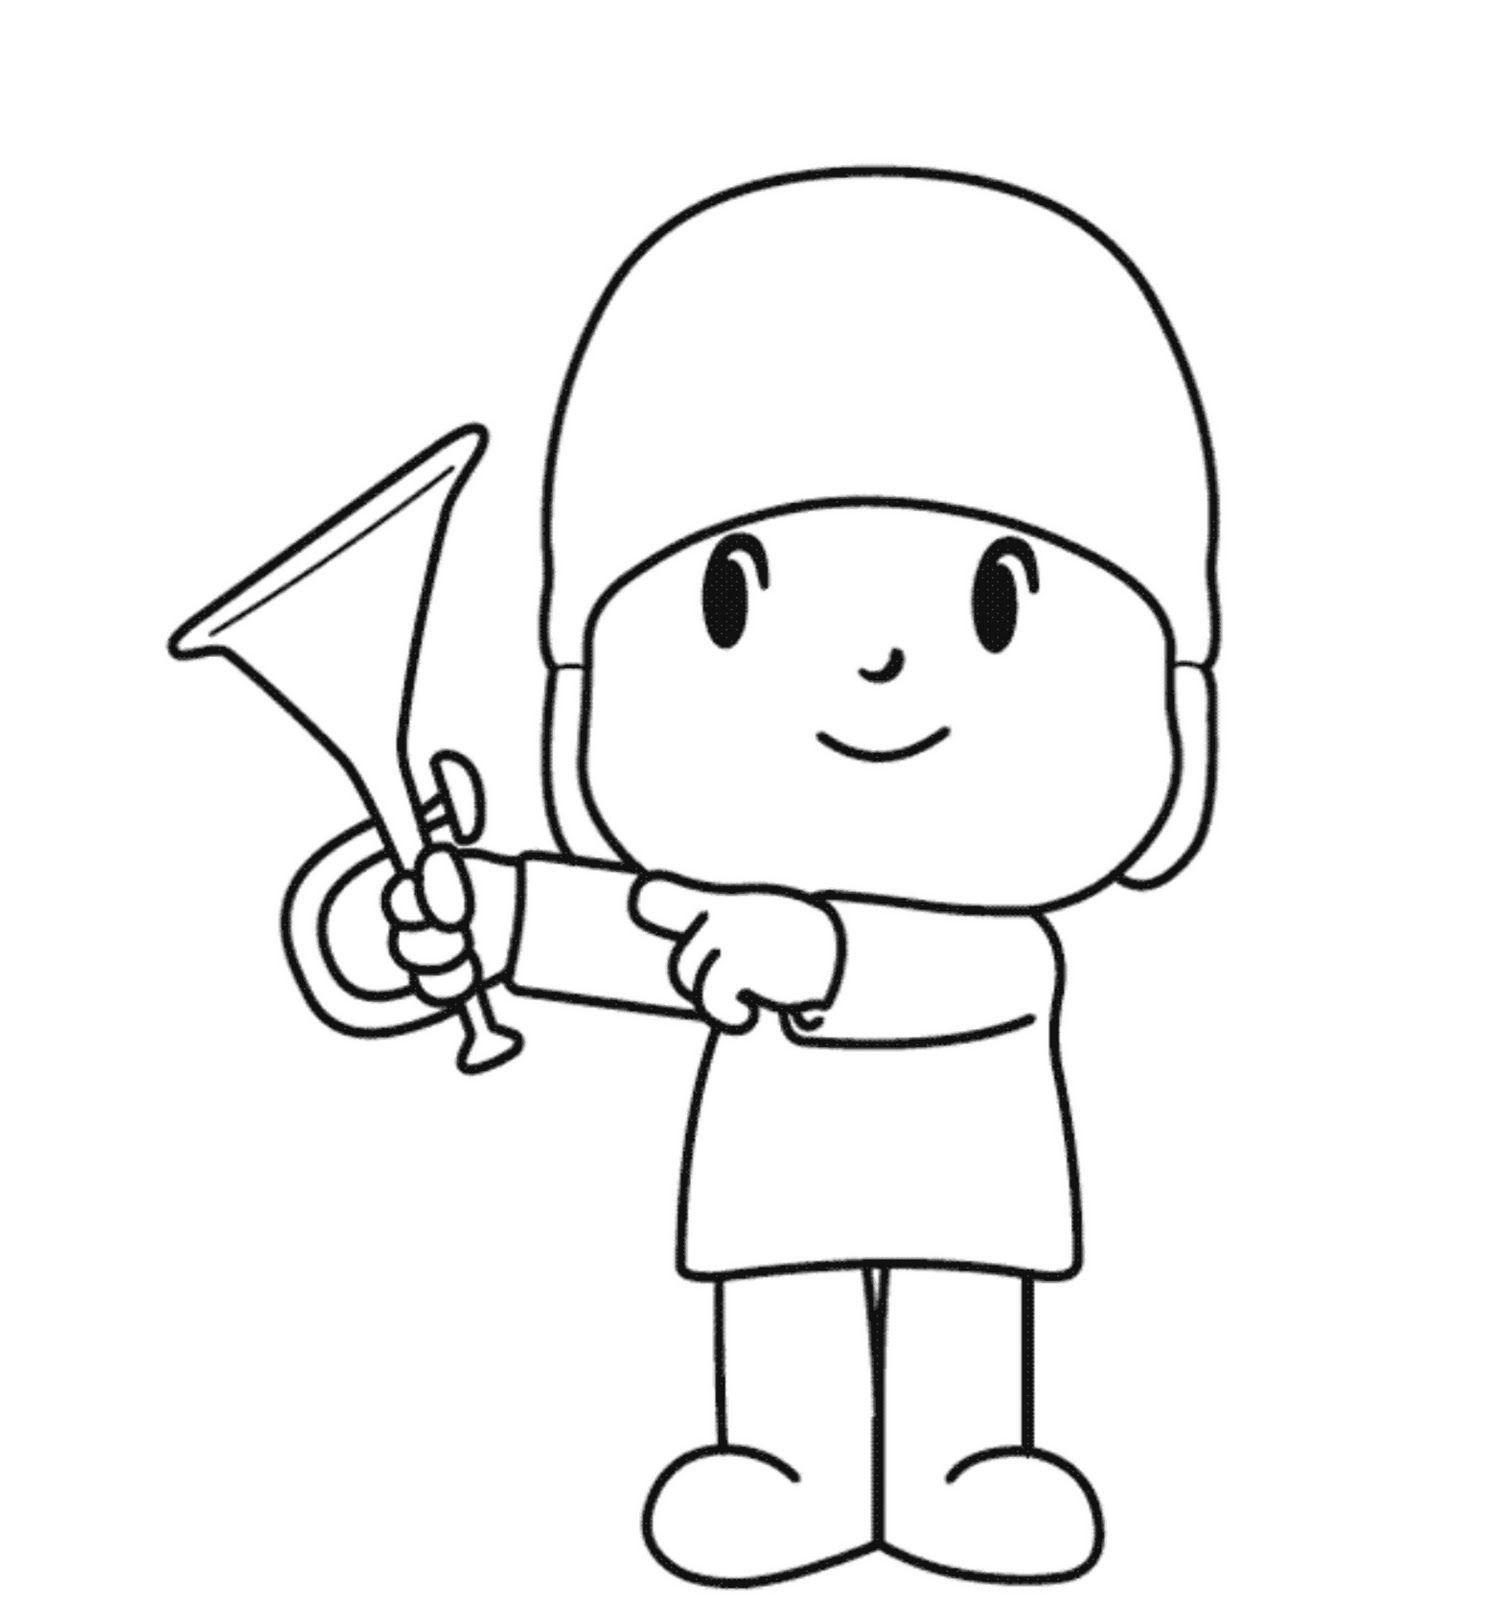 Pocoyo Coloring Pages Libri da colorare, Pagine da